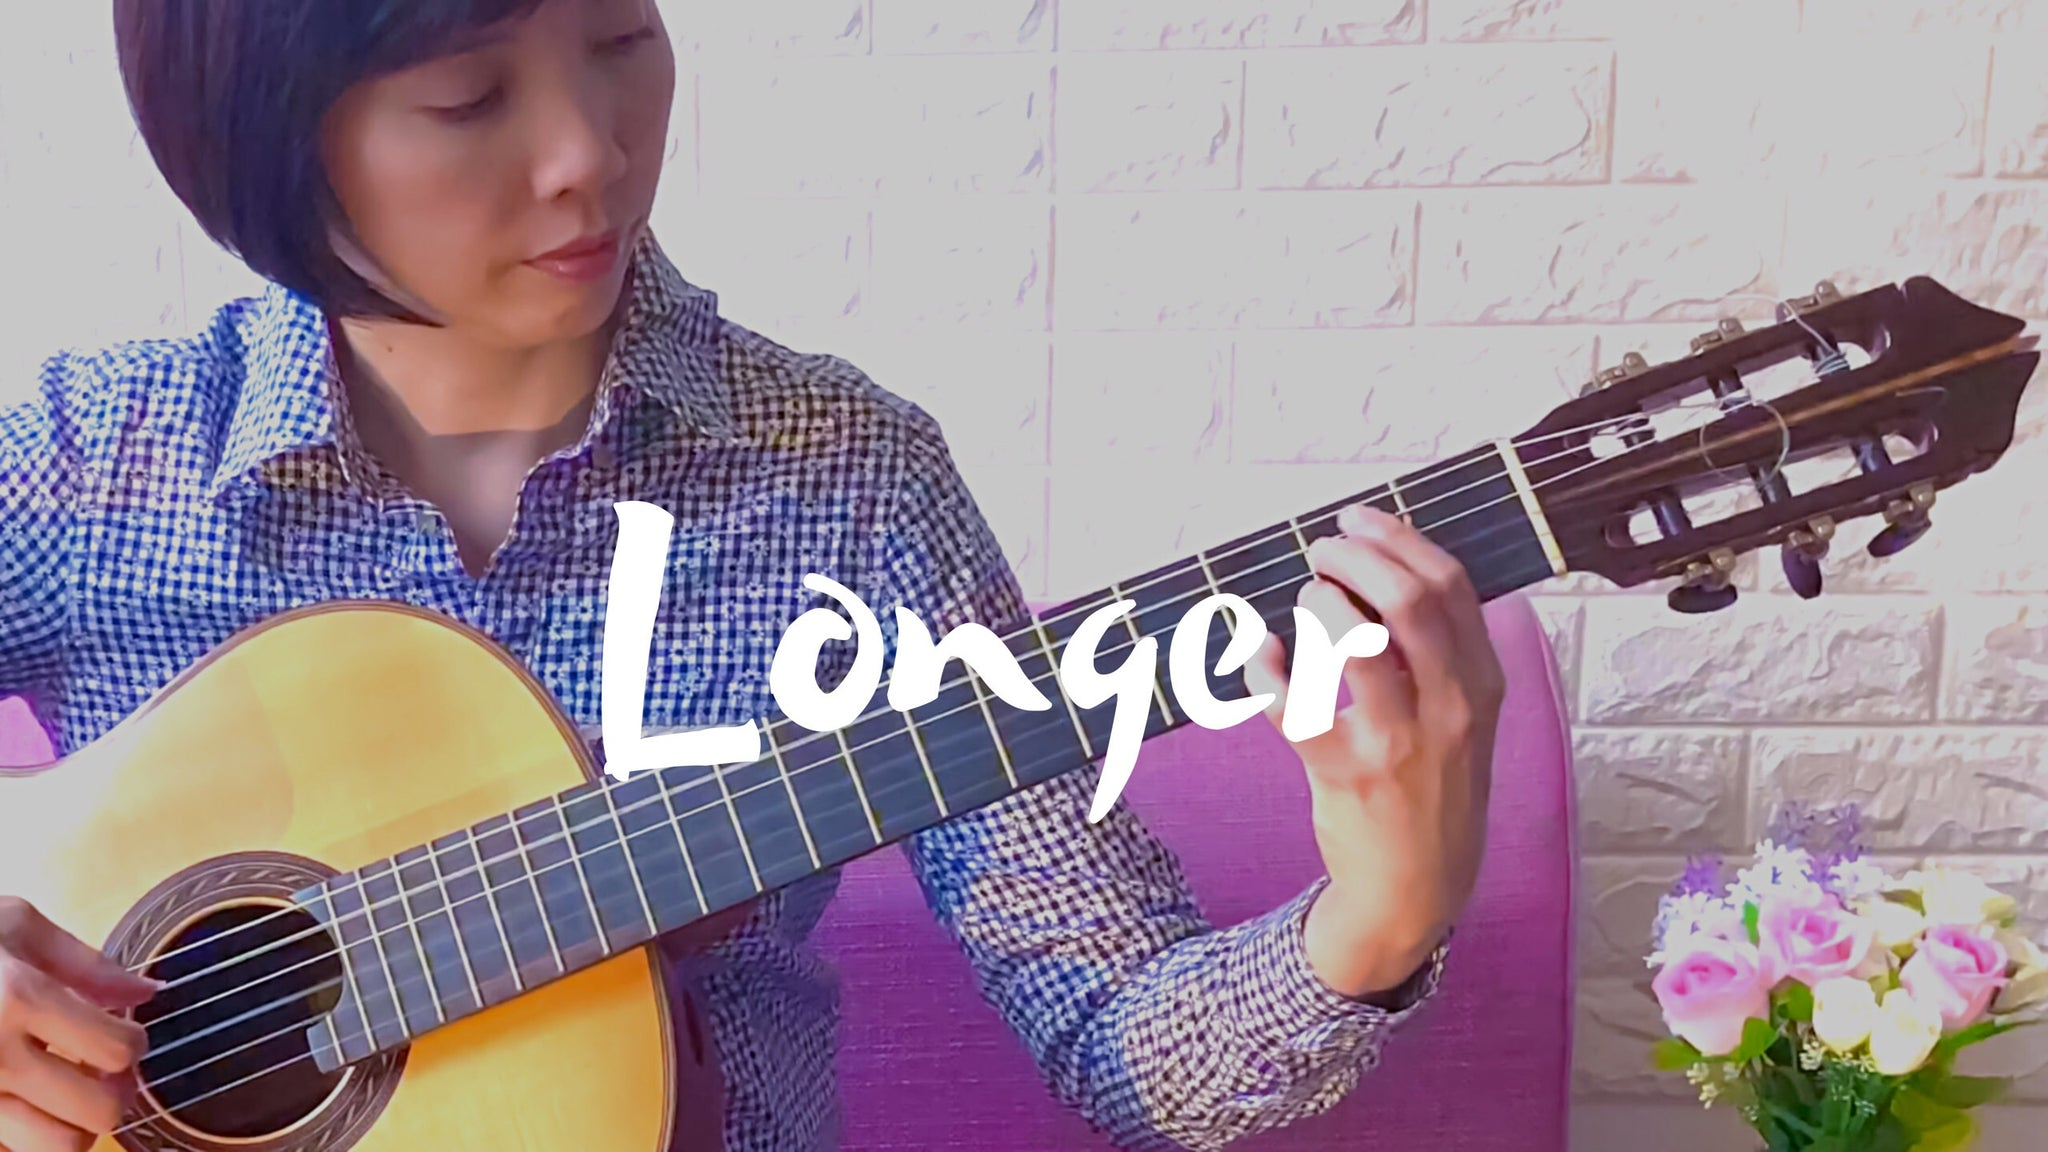 [New Video] Longer by Dan Fogelberg